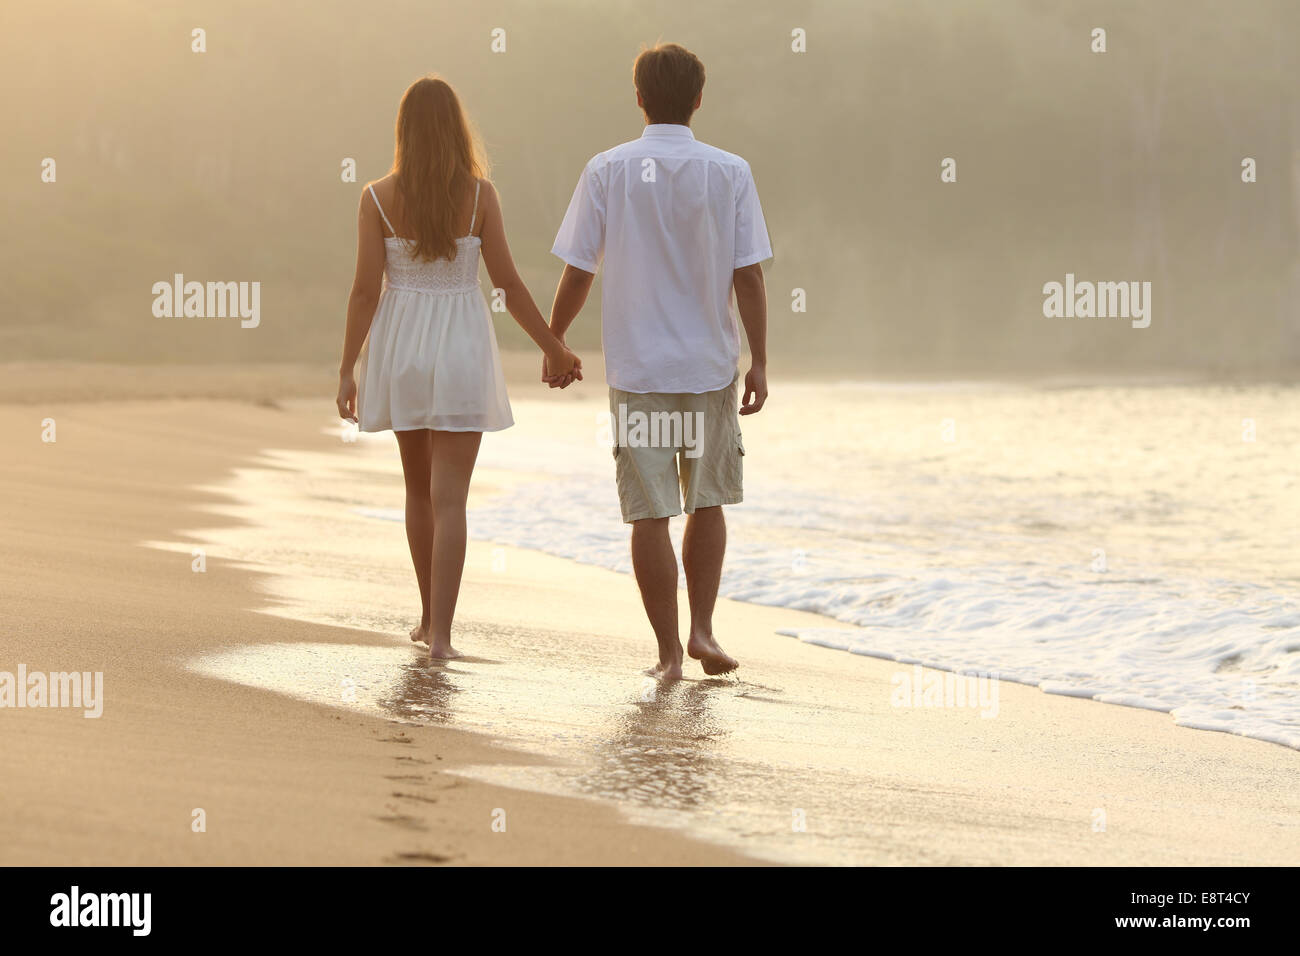 Back view of a couple walking and holding hands on the sand of a beach at sunset - Stock Image